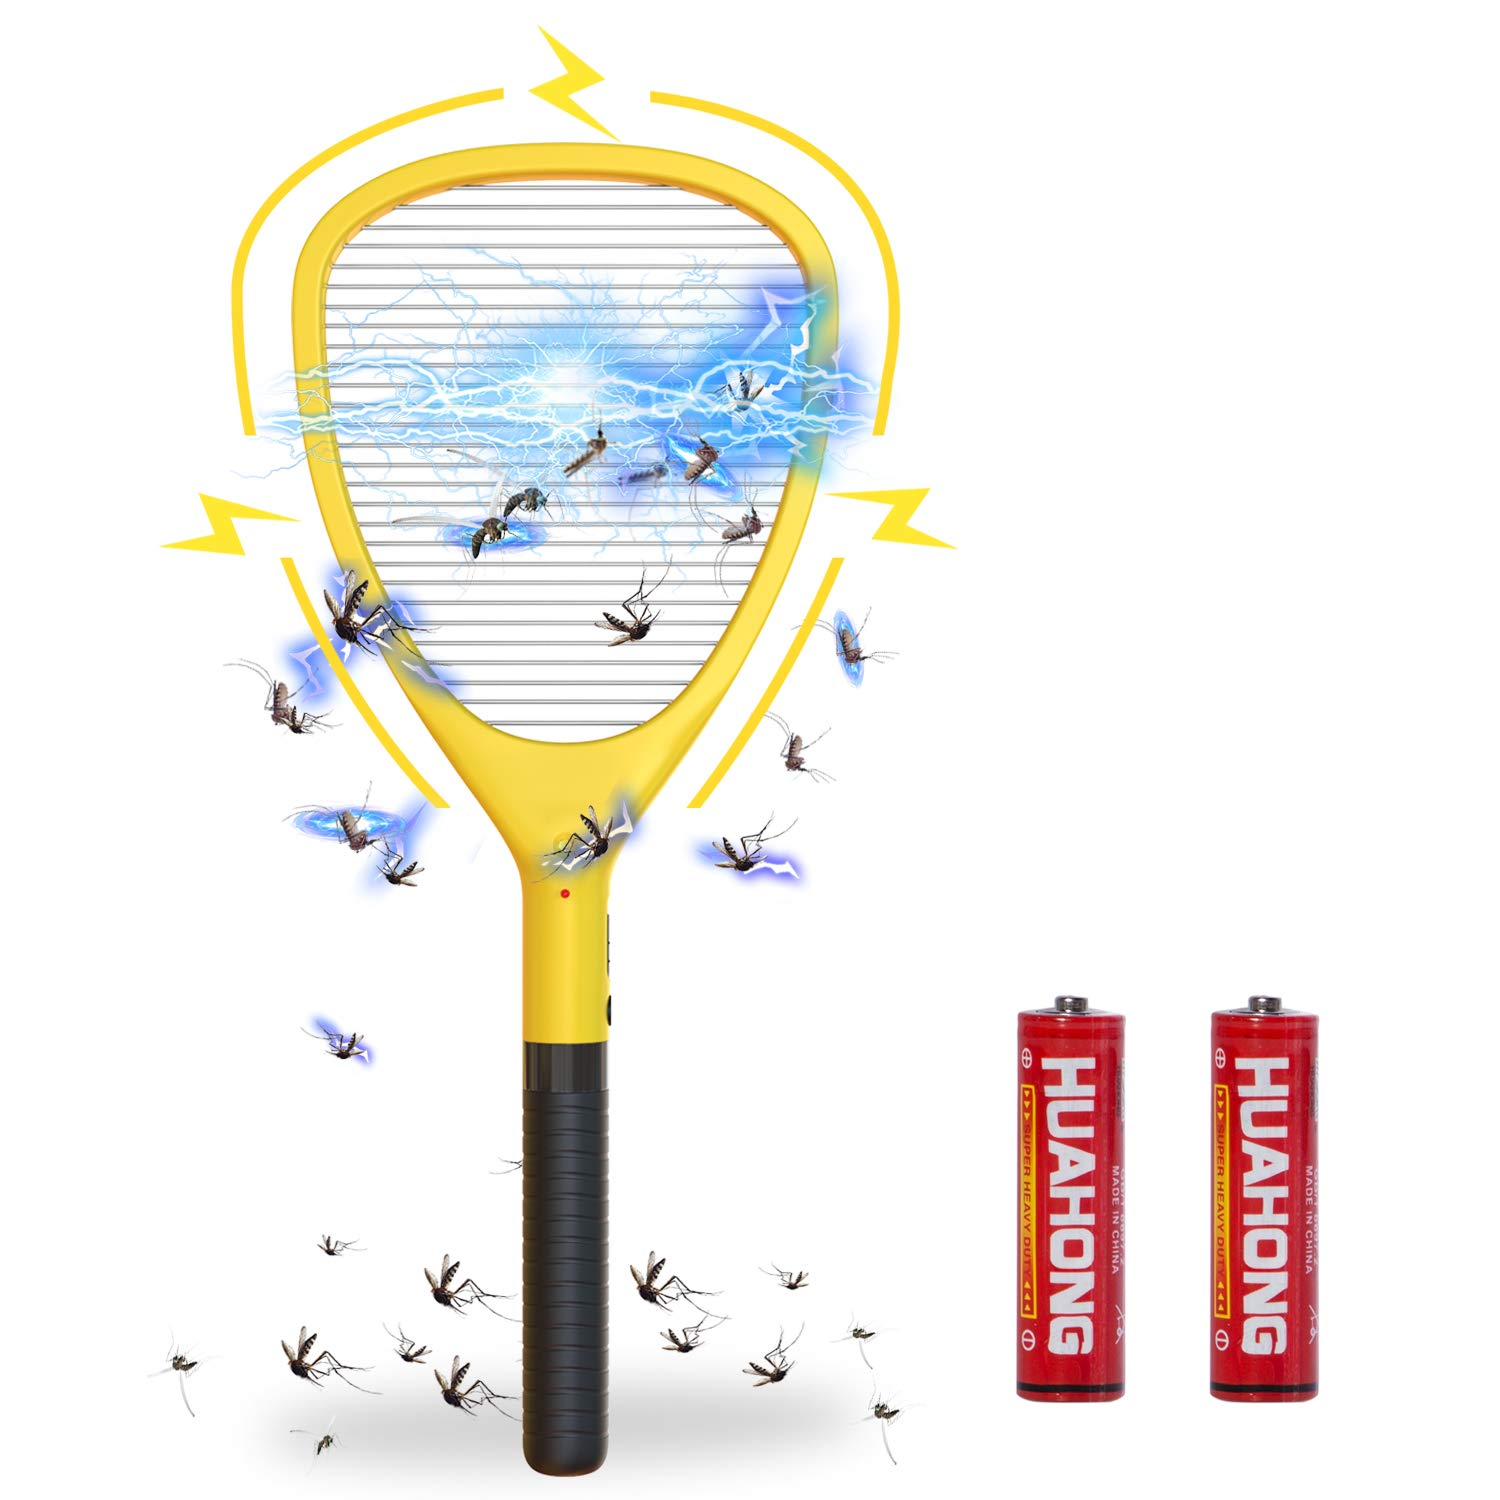 Dwcom Electric Fly Swatter, High Voltage Handheld Bug Zapper Mosquito Killer, Fruit Fly, Insect Trap Racket, 19.68¡± x 8.26¡±(2 AA Batteries Included) by Dwcom